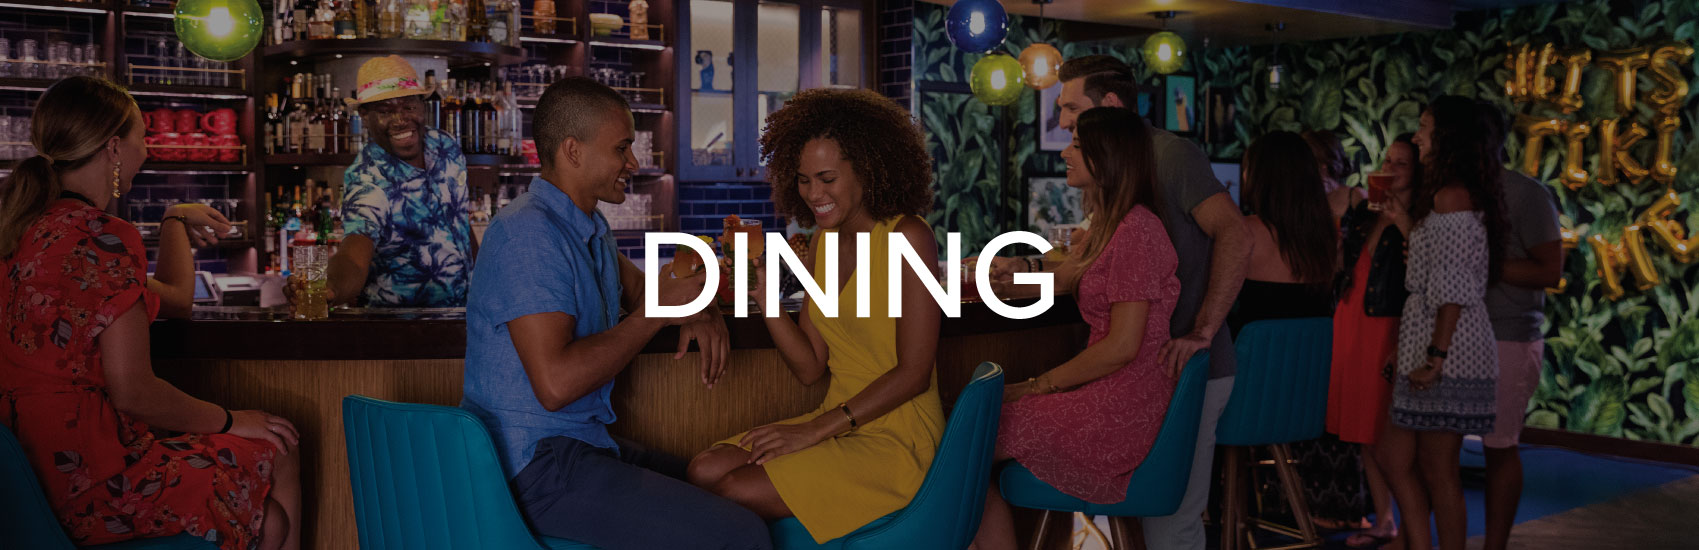 Royal Caribbean | Dining 0